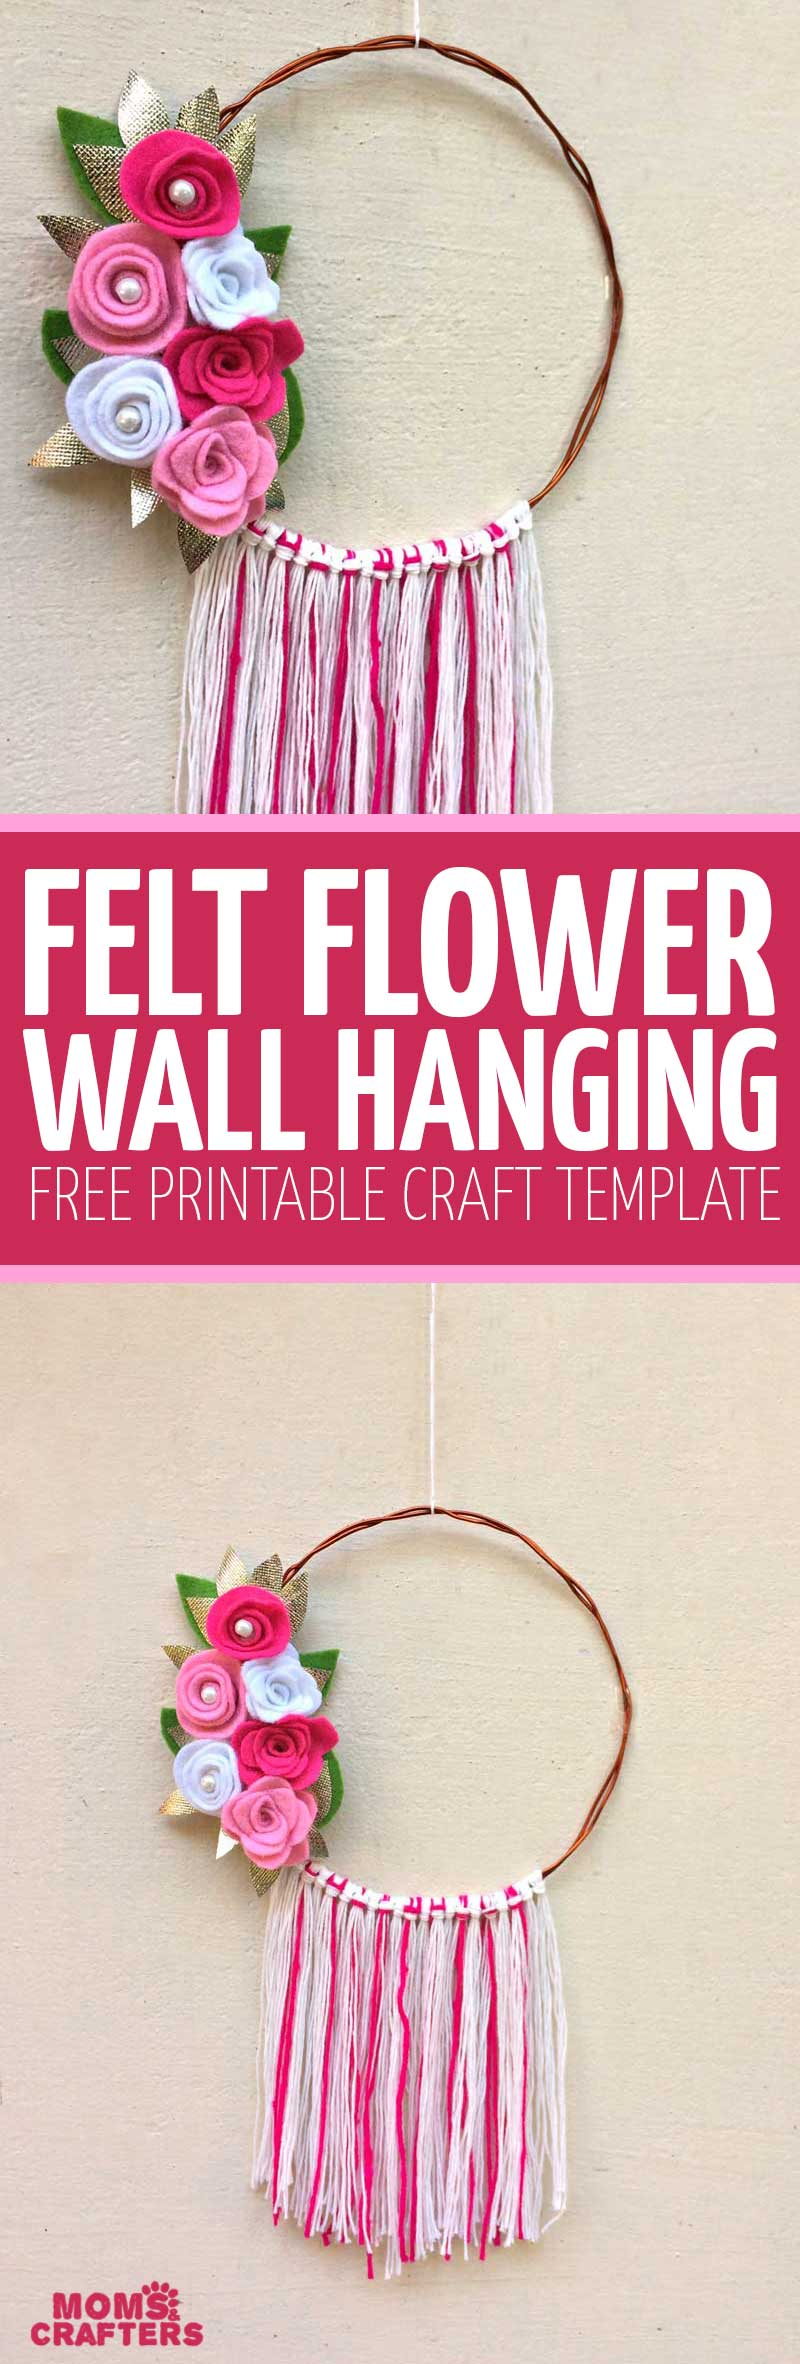 Make this beautiful DIY felt flower wreath or wall hanging for Spring - it's a super cool Spring craft for tweens and teens - and grown-ups too! This floral Spring and Summer home decor comes with a free printable template to make your own felt flowers #springdecor #teencrafts #flowers